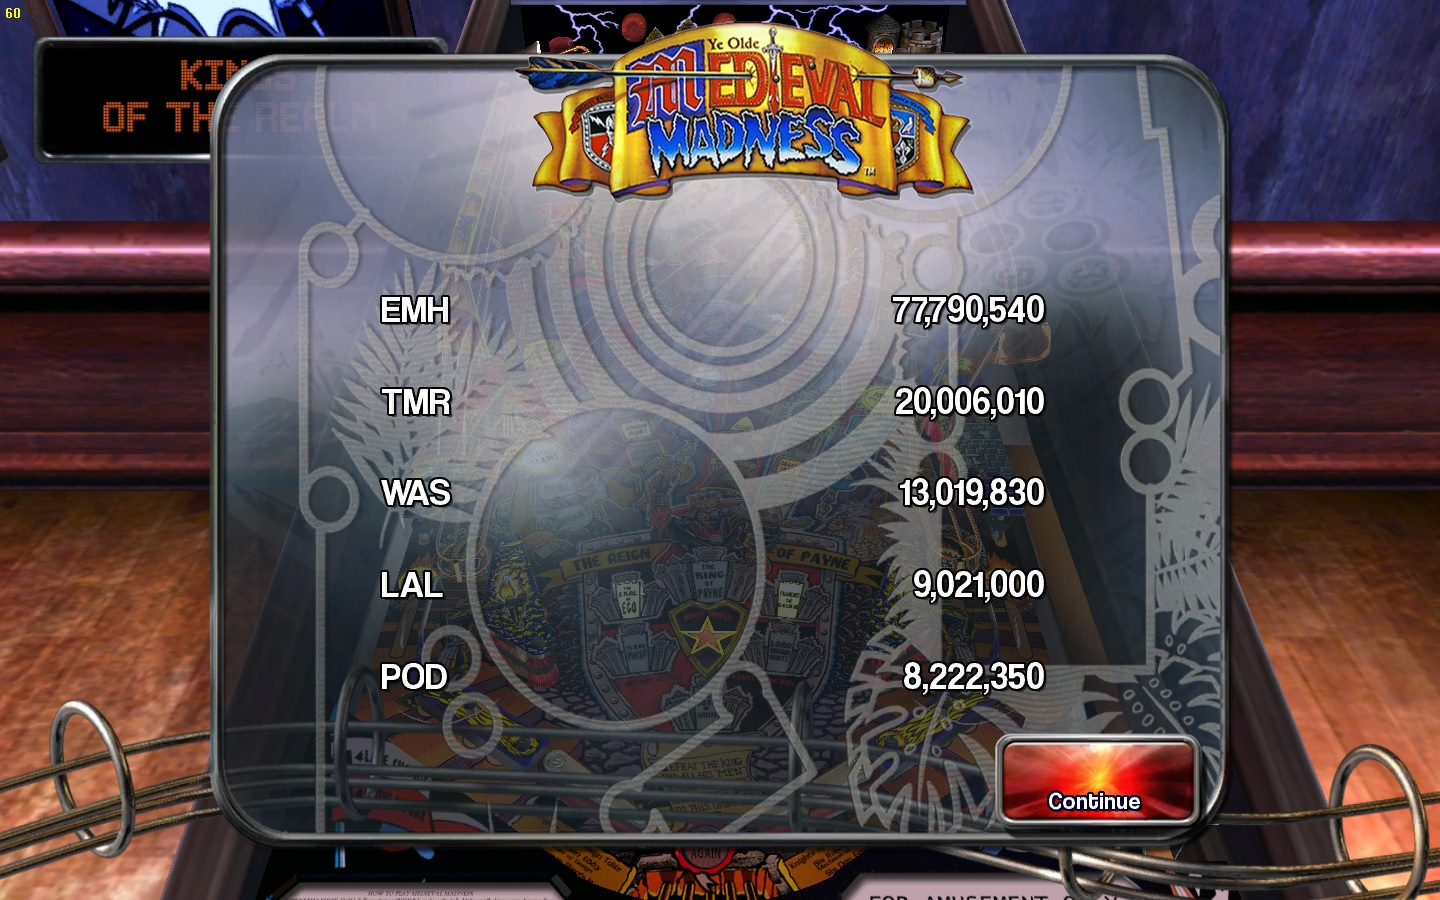 lowGman: Pinball Arcade: Medieval Madness (PC) 77,790,540 points on 2015-09-21 22:09:08